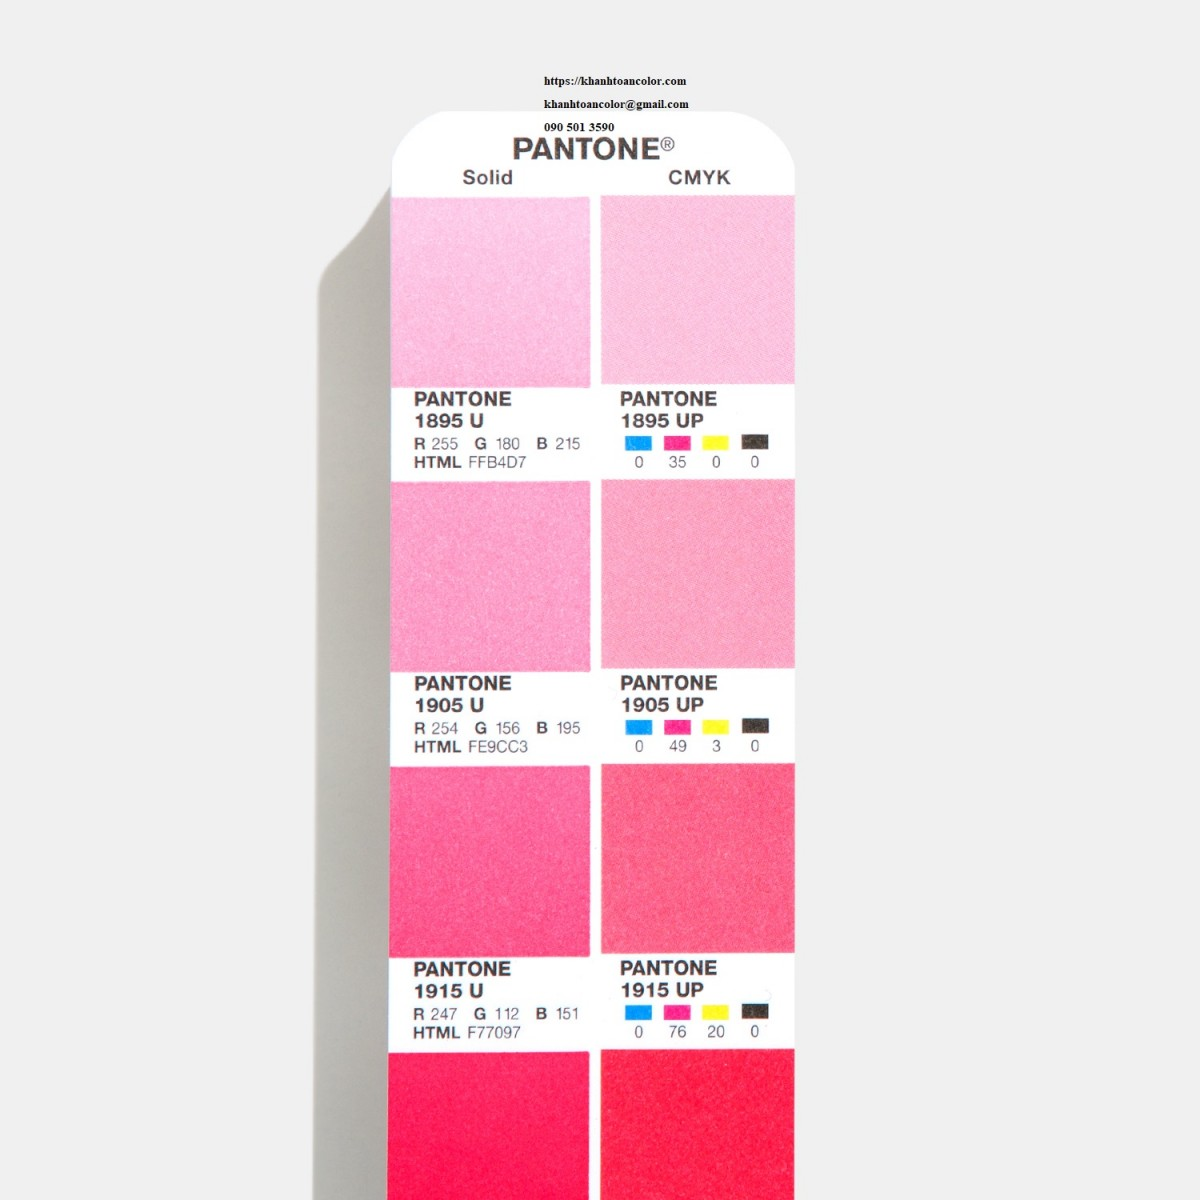 bang mau GG6104A-pantone-graphics-pms-srgb-cmyk-hex-color-bridge-uncoated-product-3